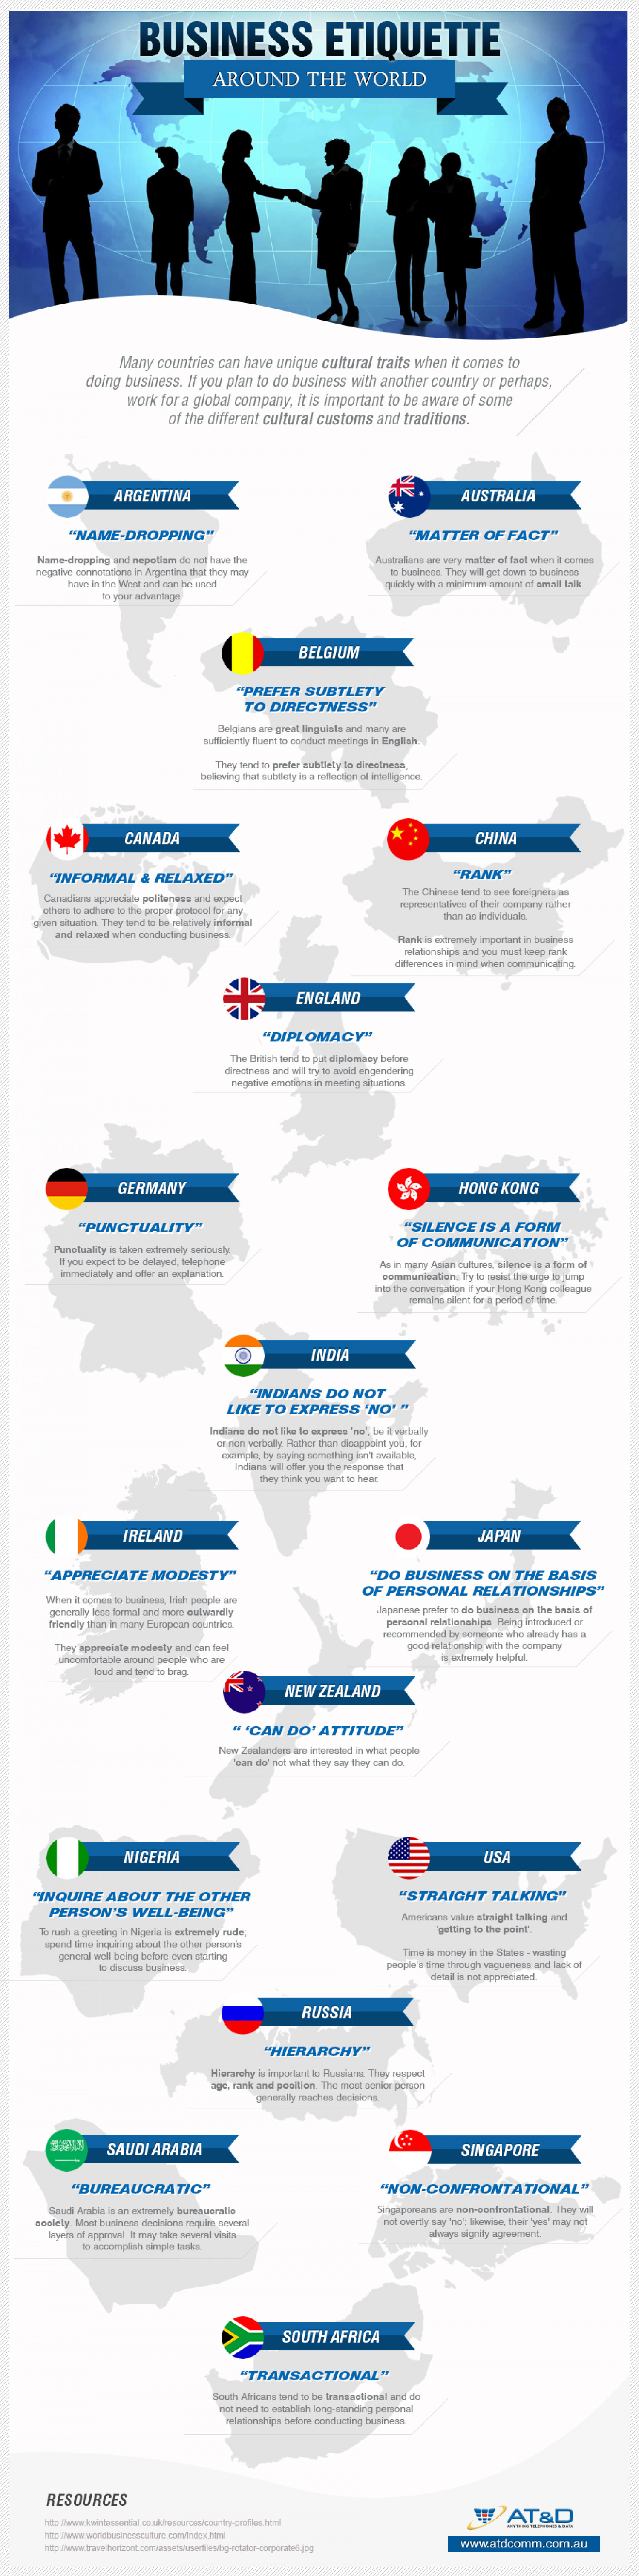 Business Etiquette around the World Infographic